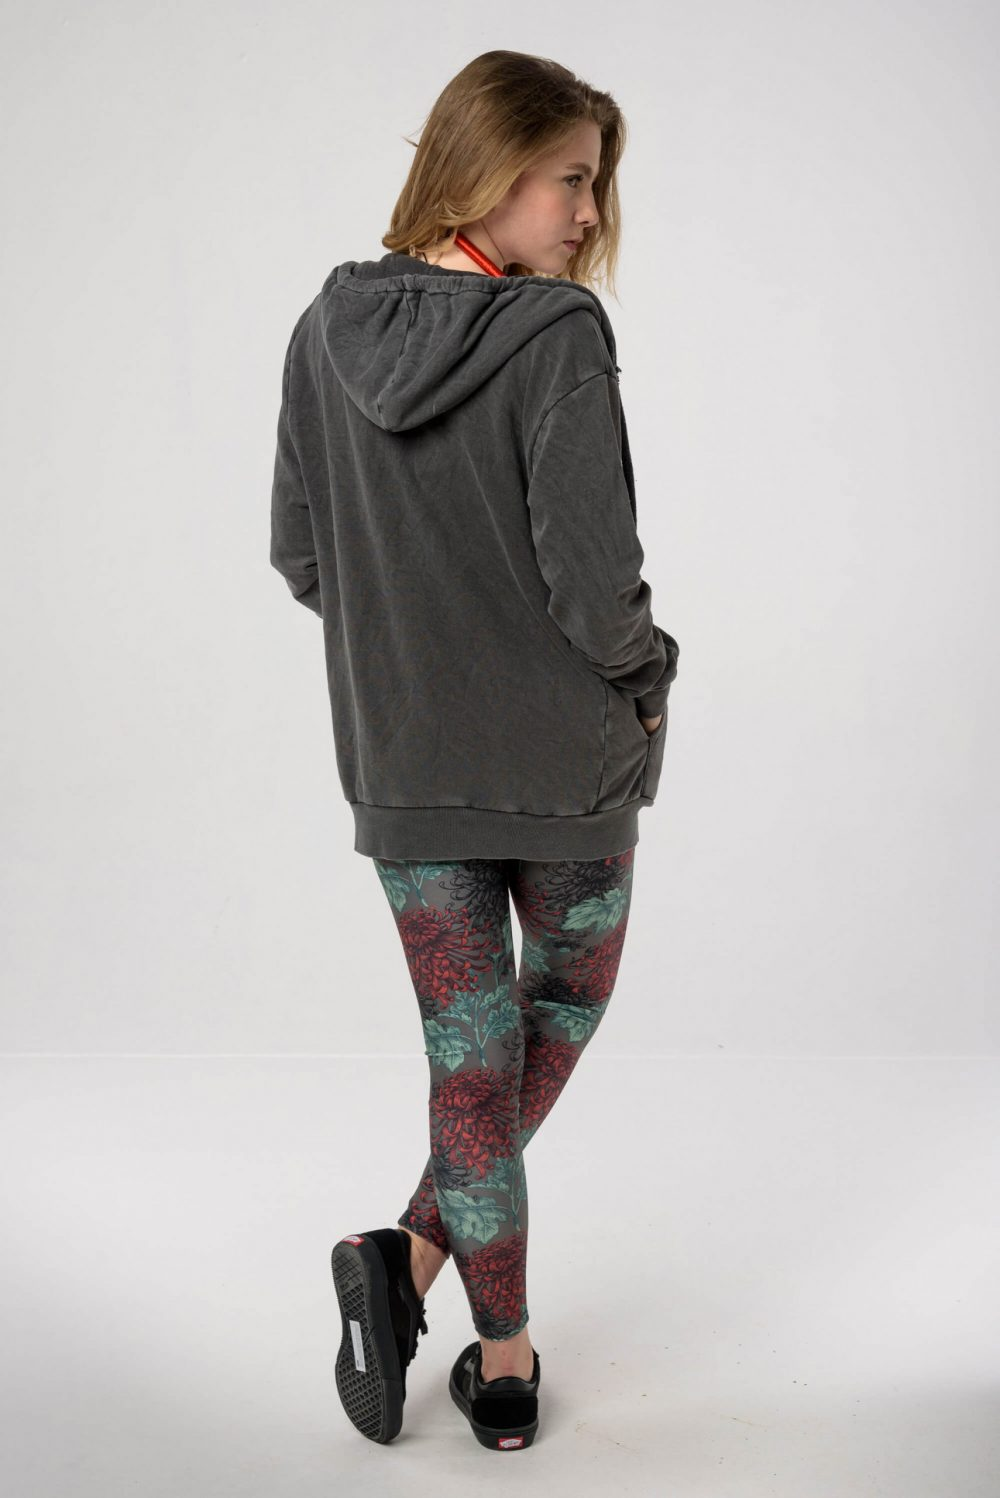 Endalaus Rock Blink hoodie / Heartbeatink Oriental leggings